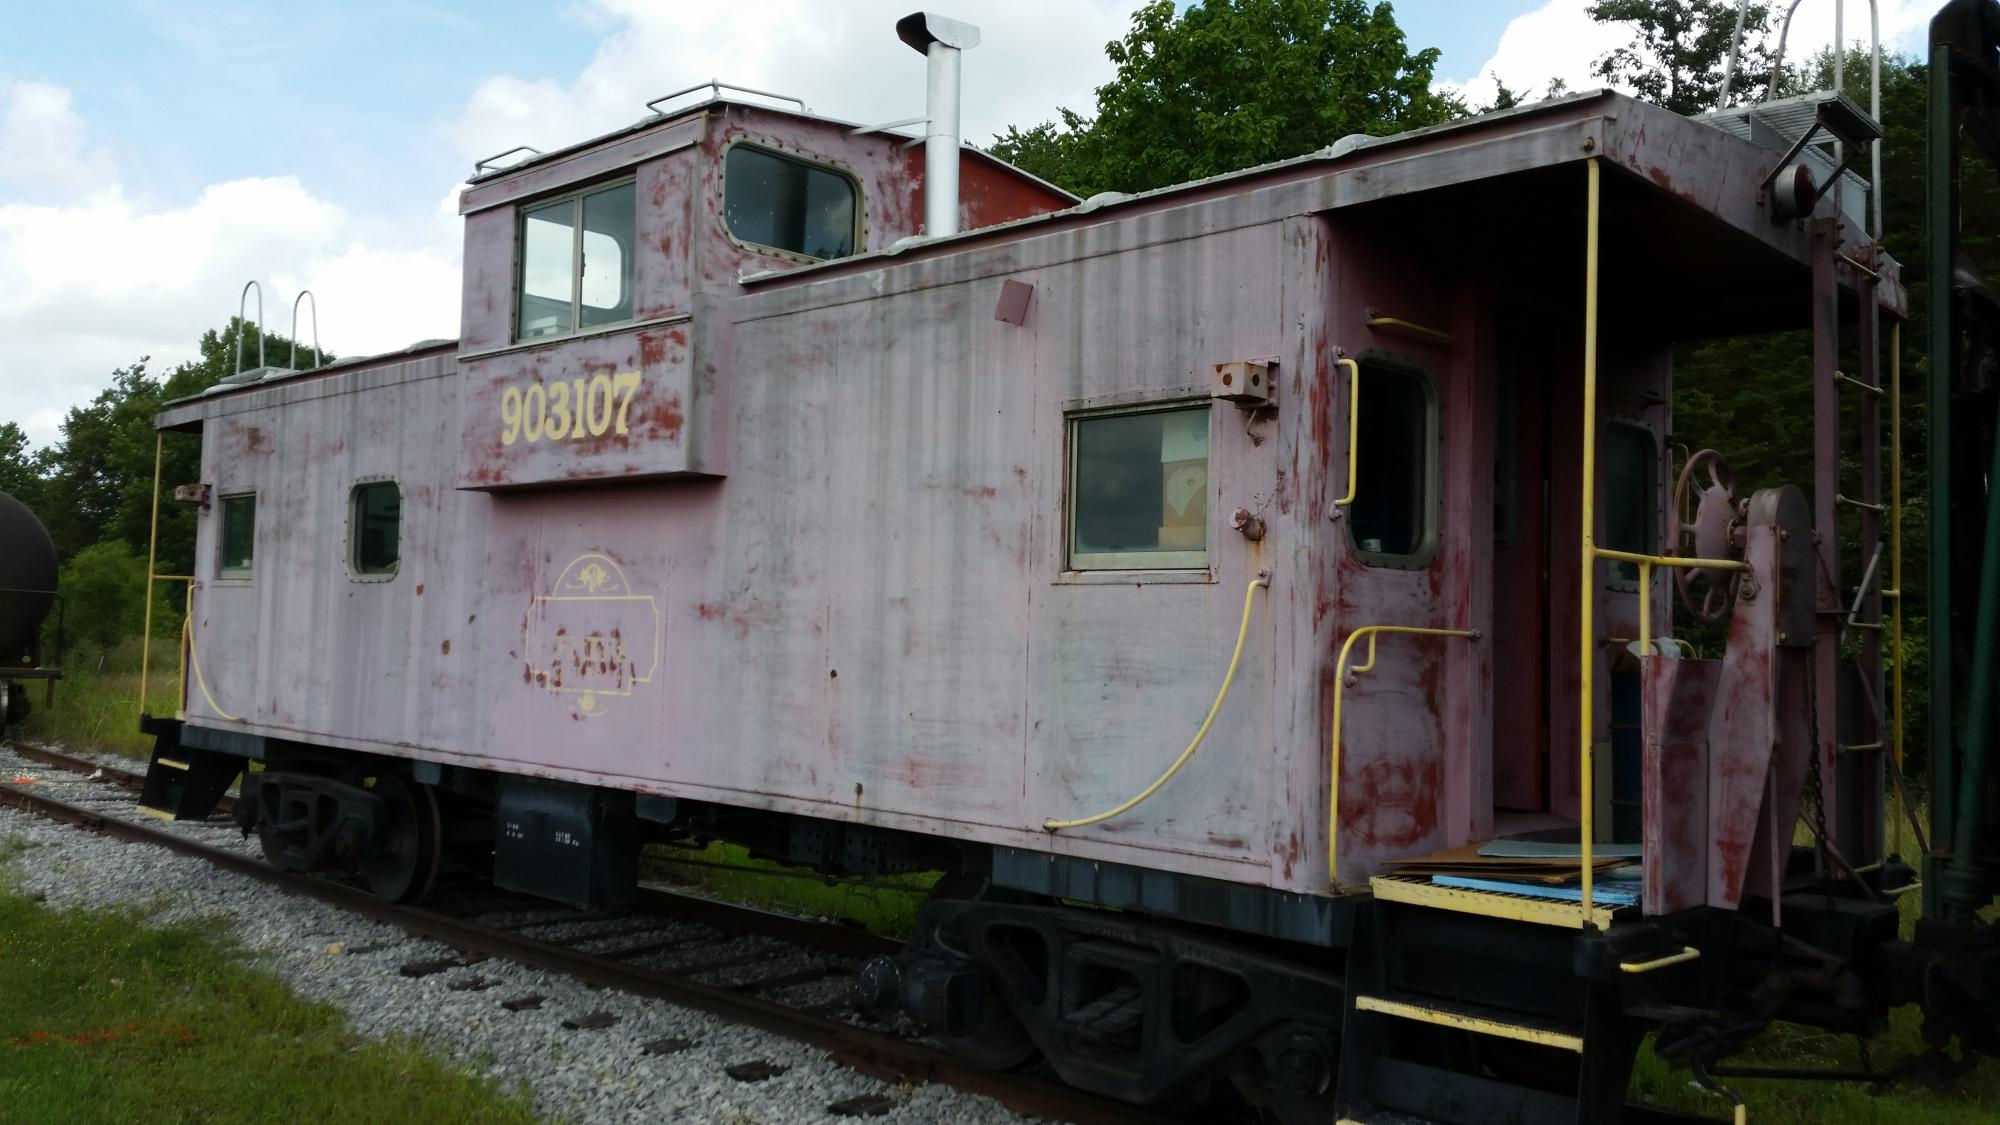 1968 C&O Caboose - Image 1/3